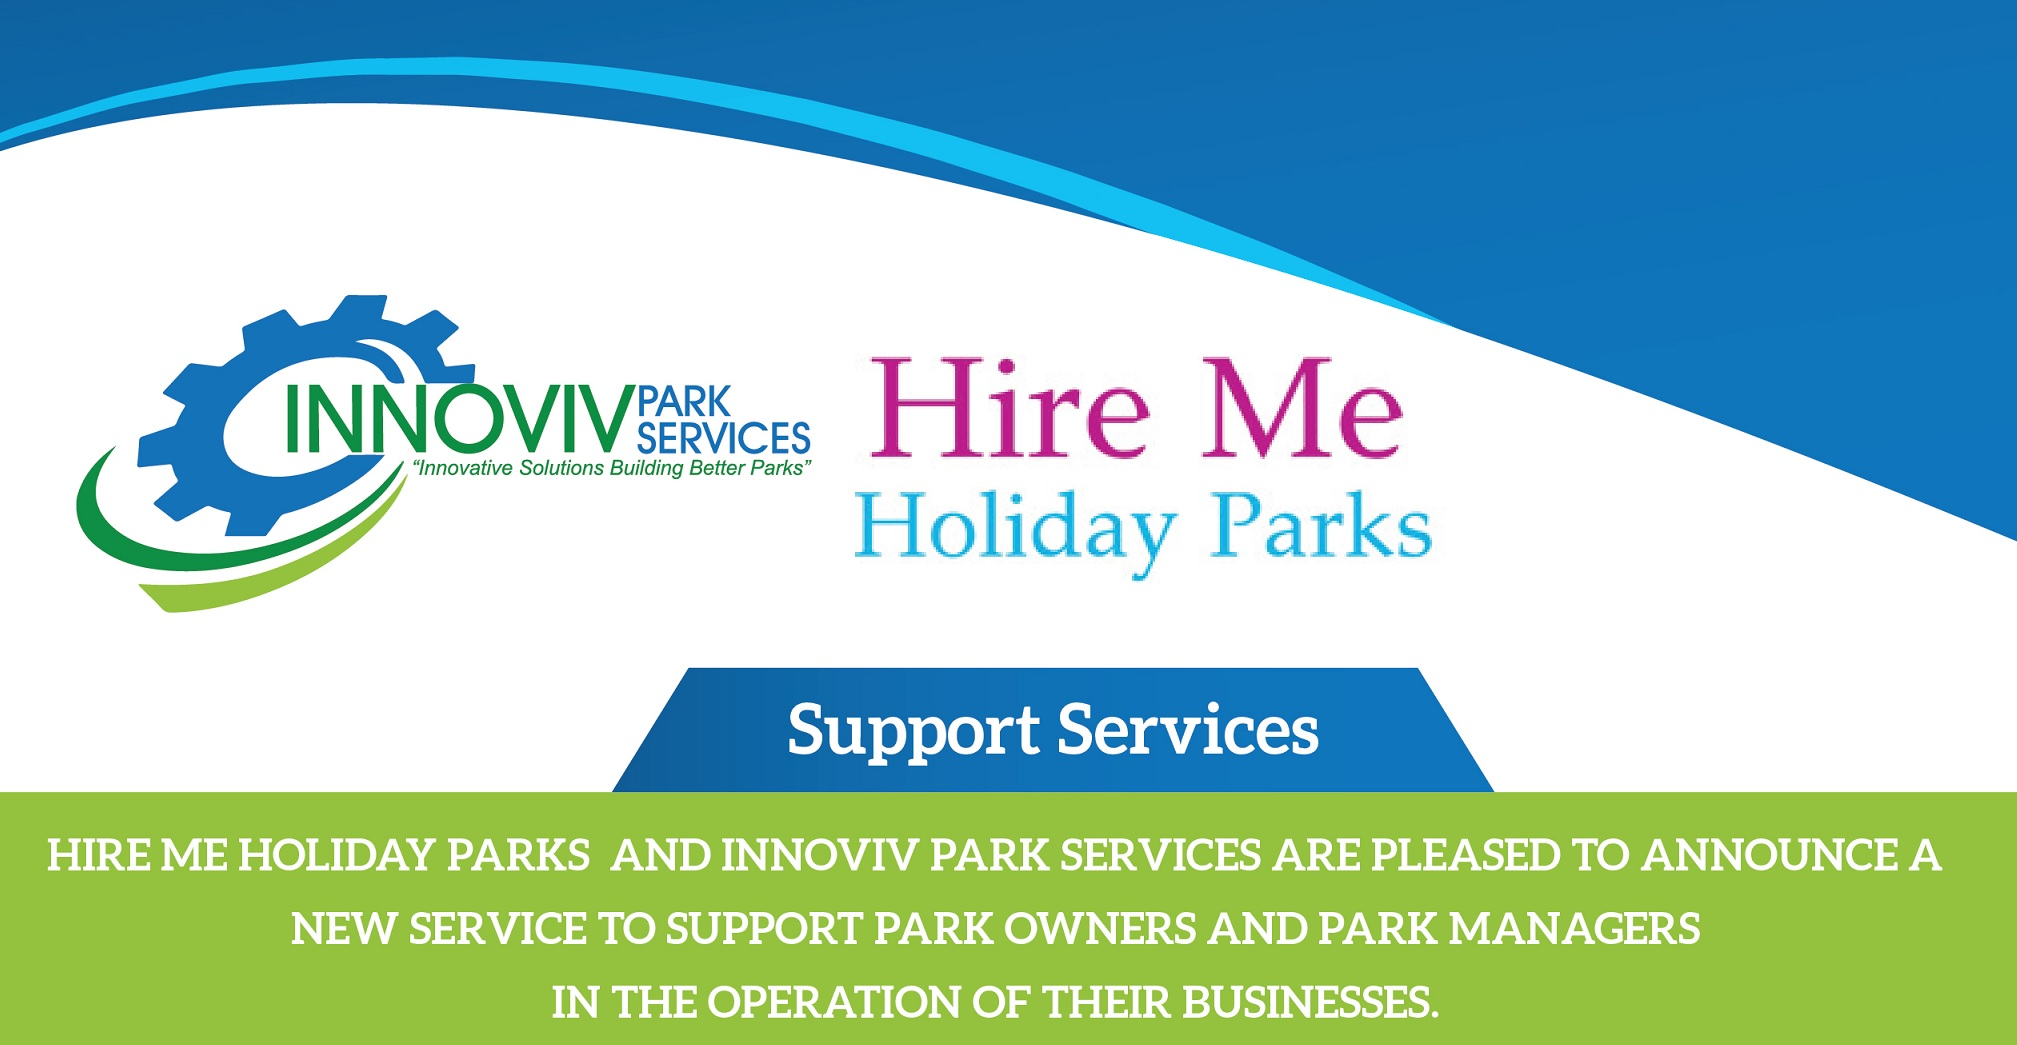 caravan park managers support innoviv and hire me holiday parks